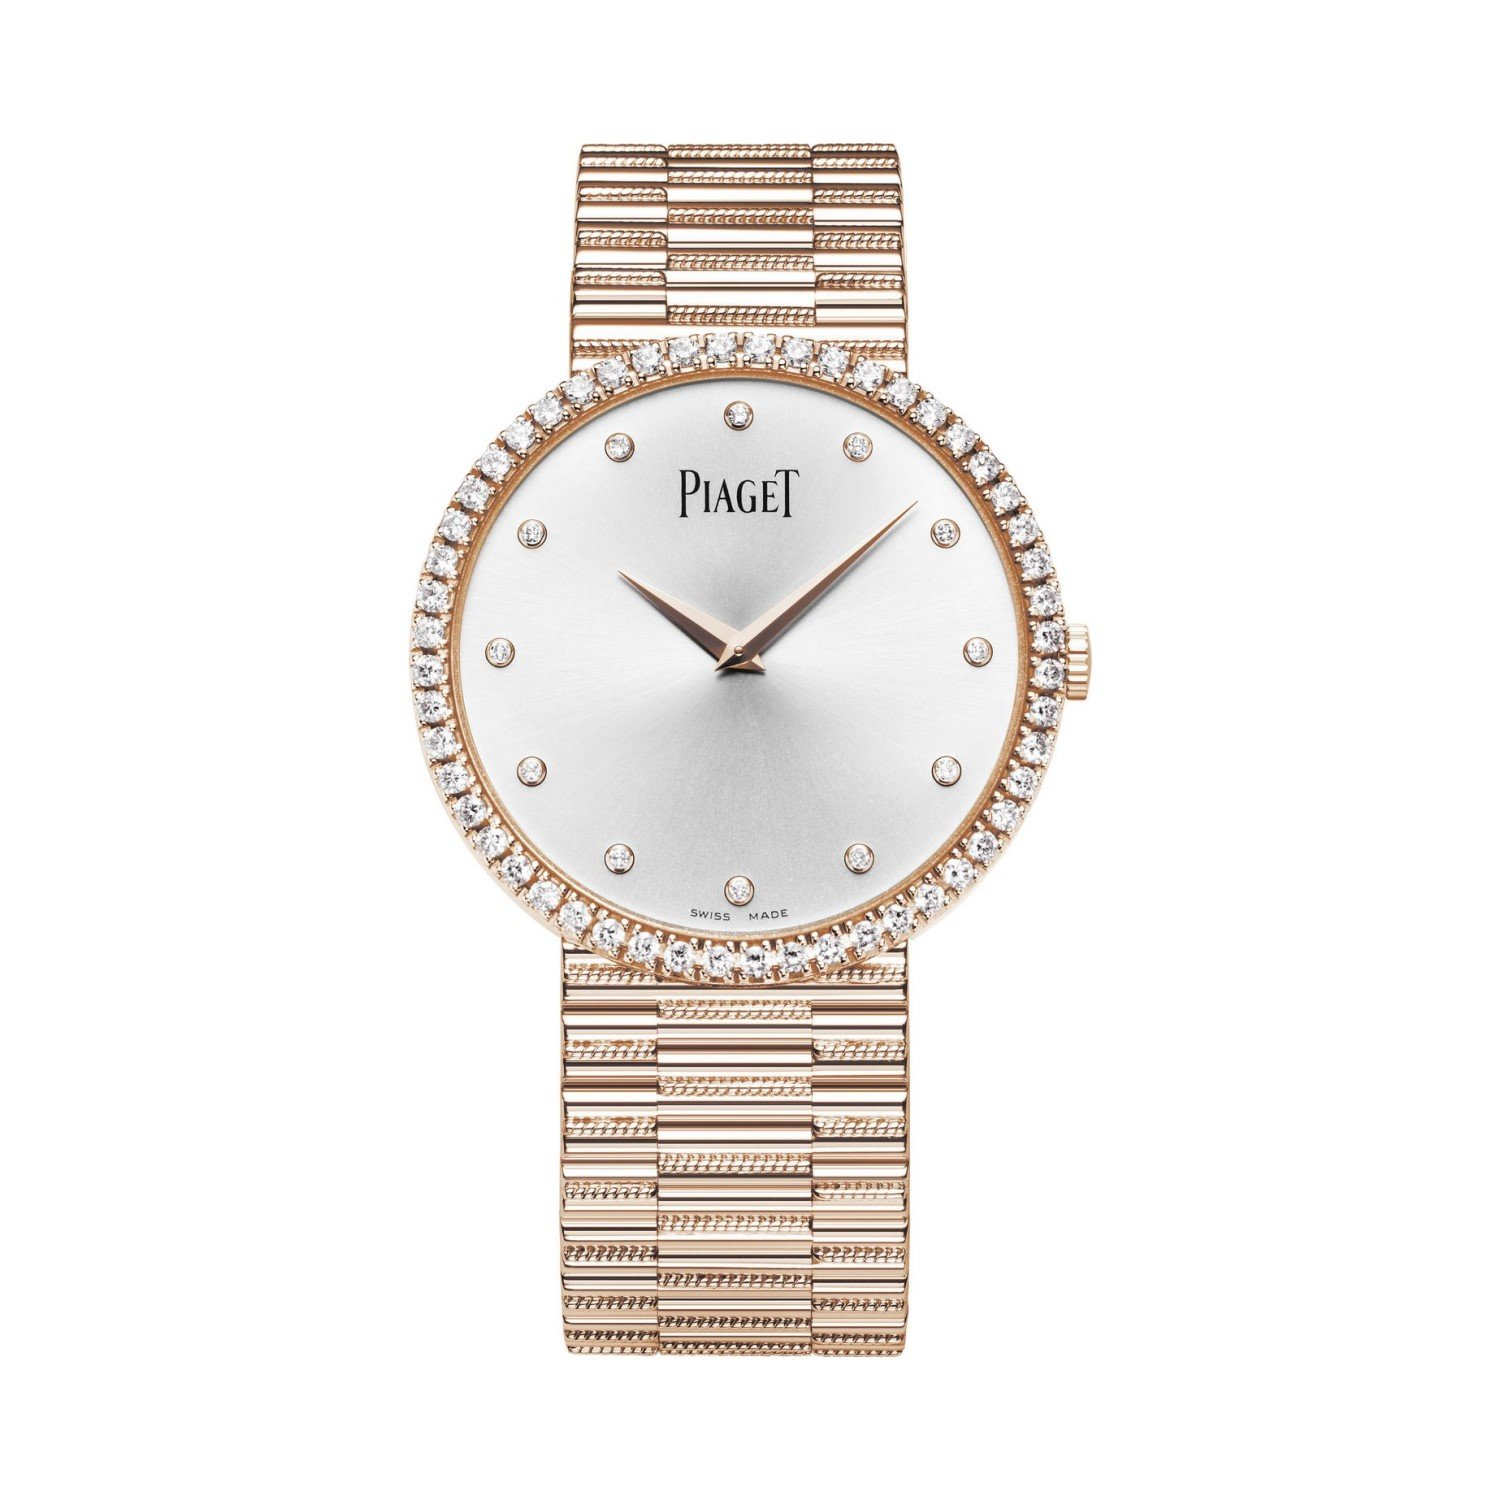 Montre Piaget Tradition